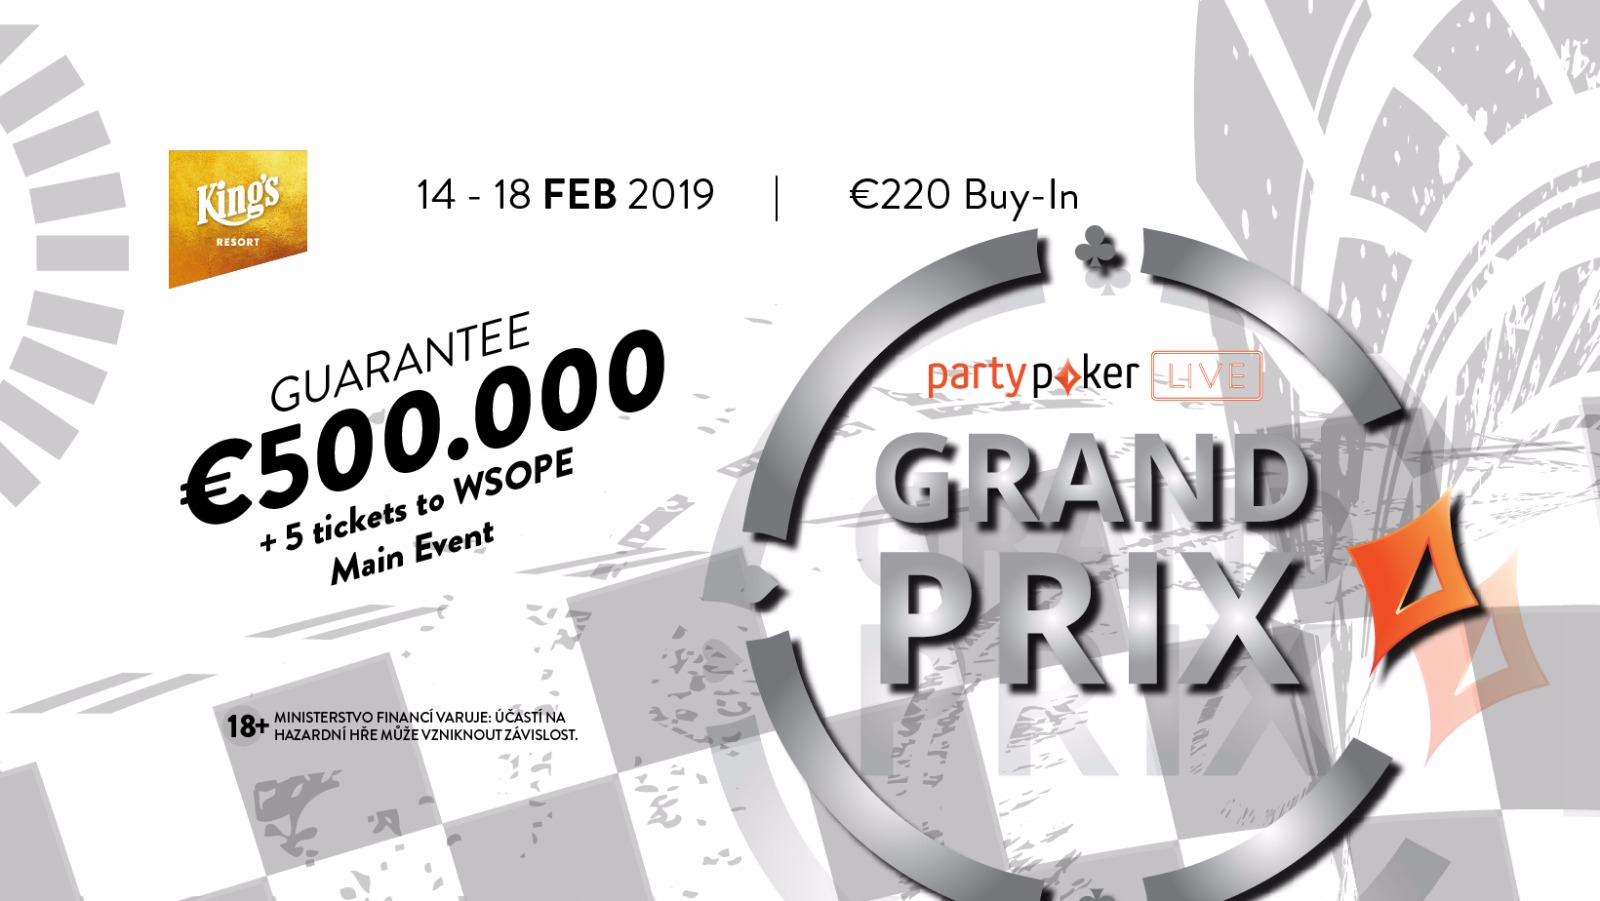 GrandPrixGermany14-18Feb